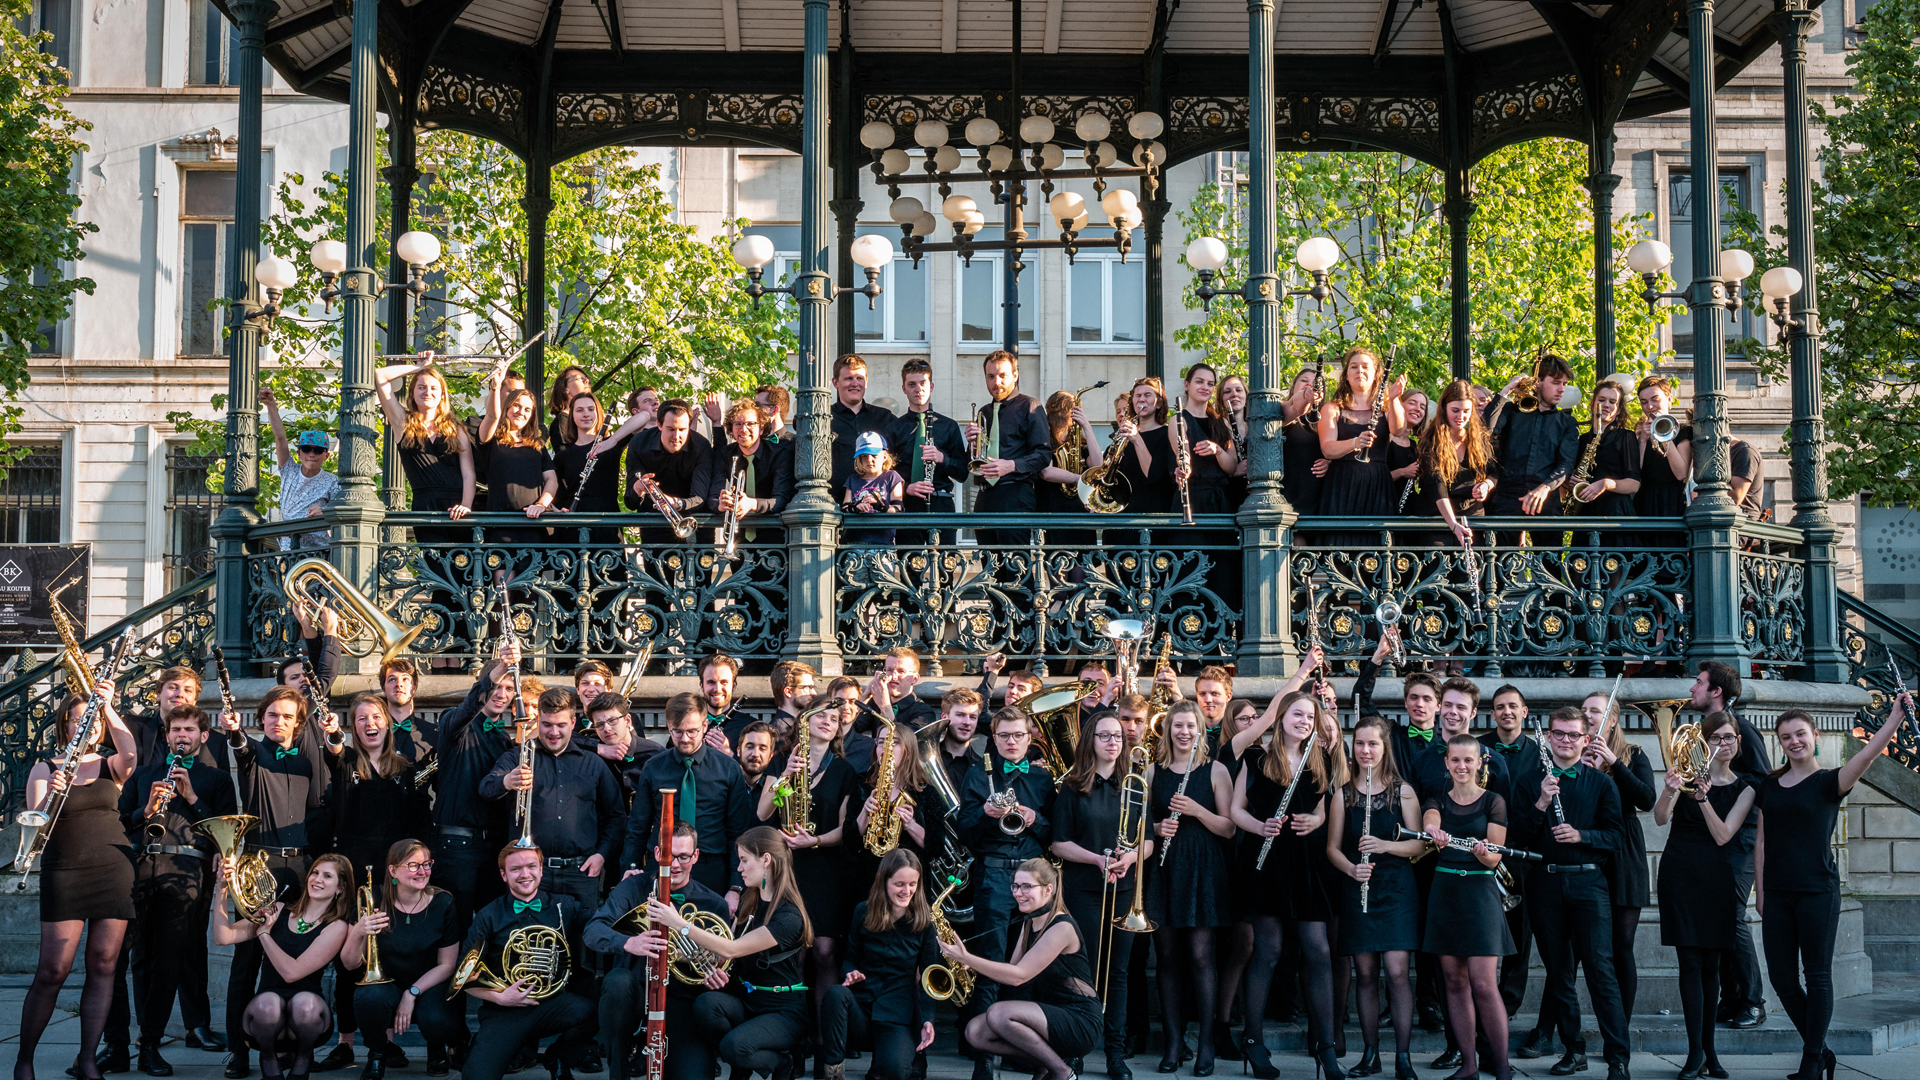 Gents Universitair Harmonie Orkest